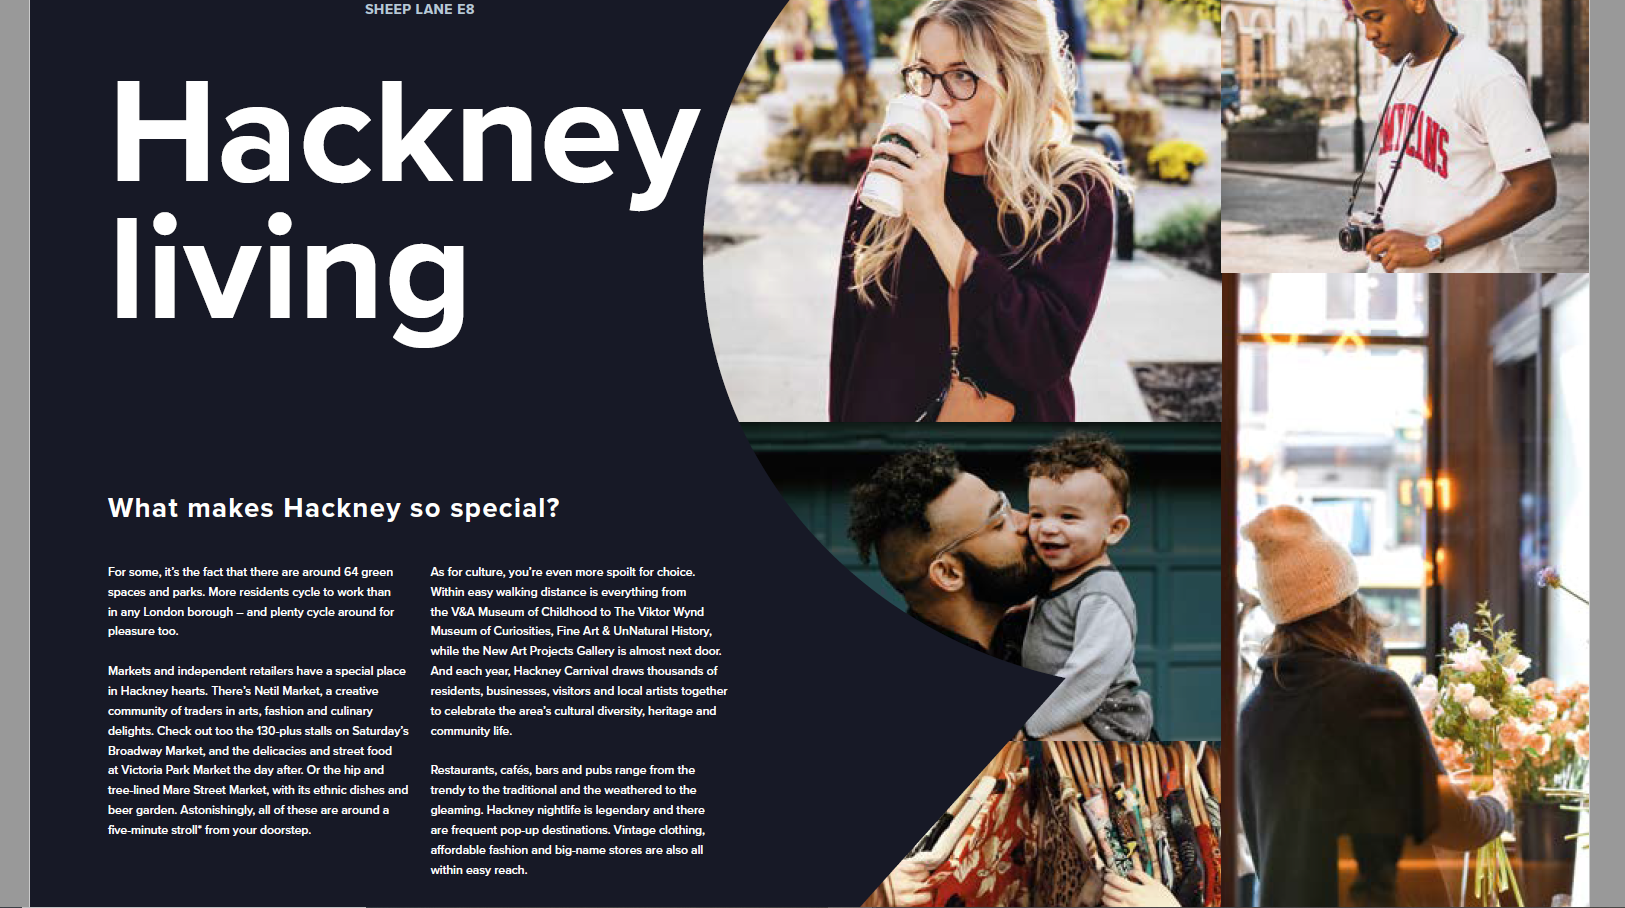 Hackney Sheep Lane - shared living brochure